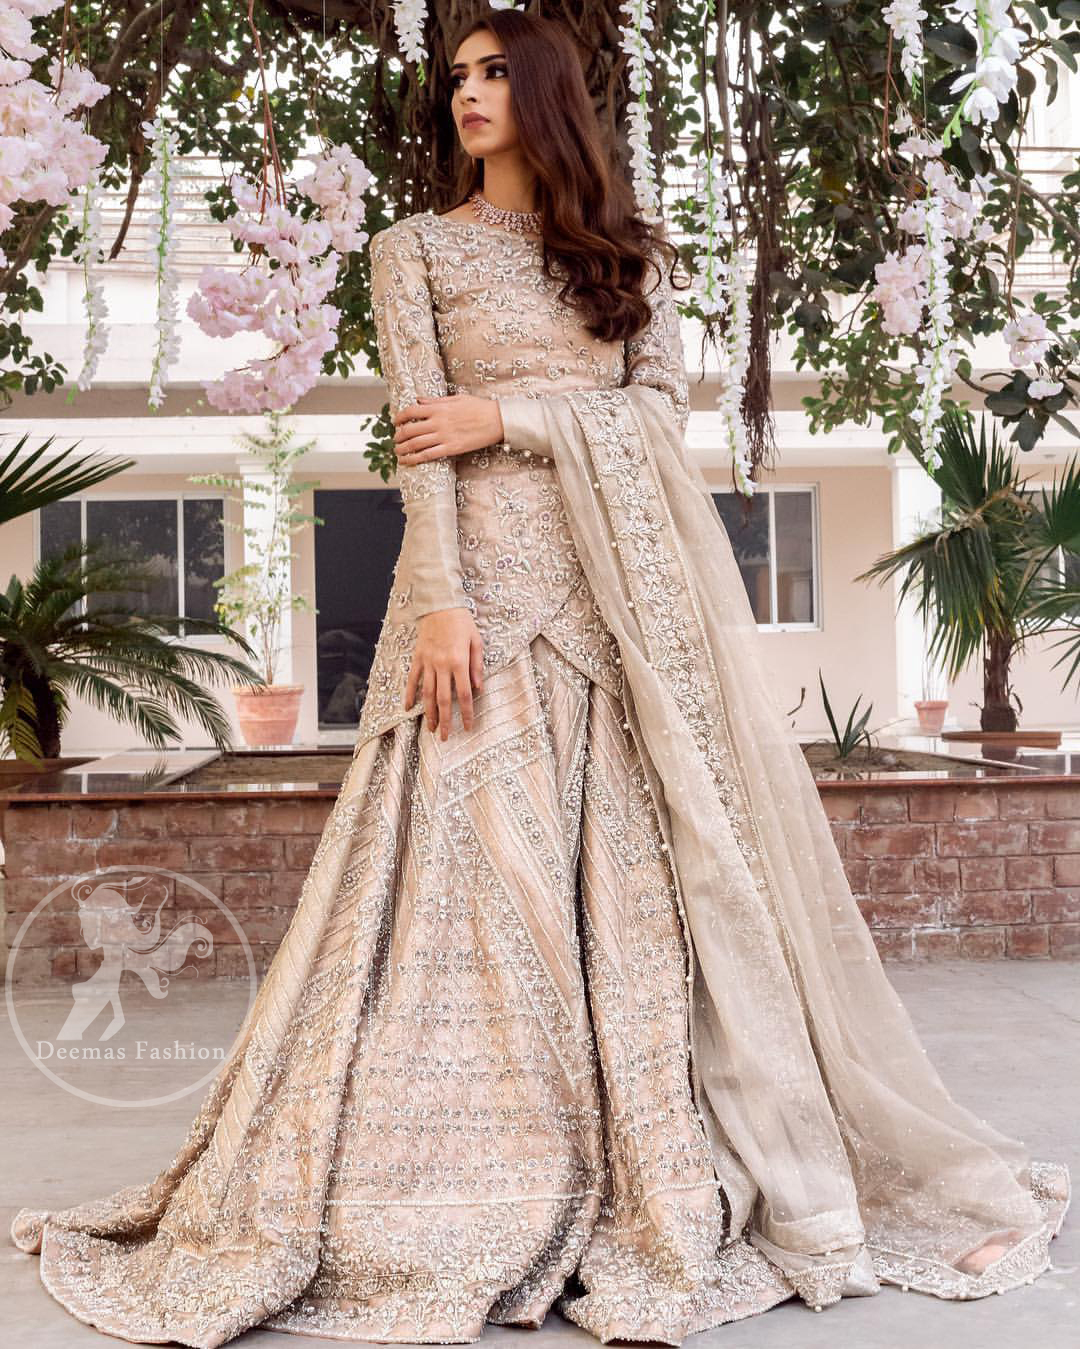 This outfit is adorned with kora, dabka, tilla, sequins and pearls. It is decorated with floral embellishments. It is overlapping shirt which adds to the look. It comes with heavy embellished lehengha allured with geometrical pattern all over it which has thick border on hemline. Tissue dupatta accompanies the garment. The dupatta has embellished borders on all four sides and small floral motifs all over it. The garment is lined with medium silk.